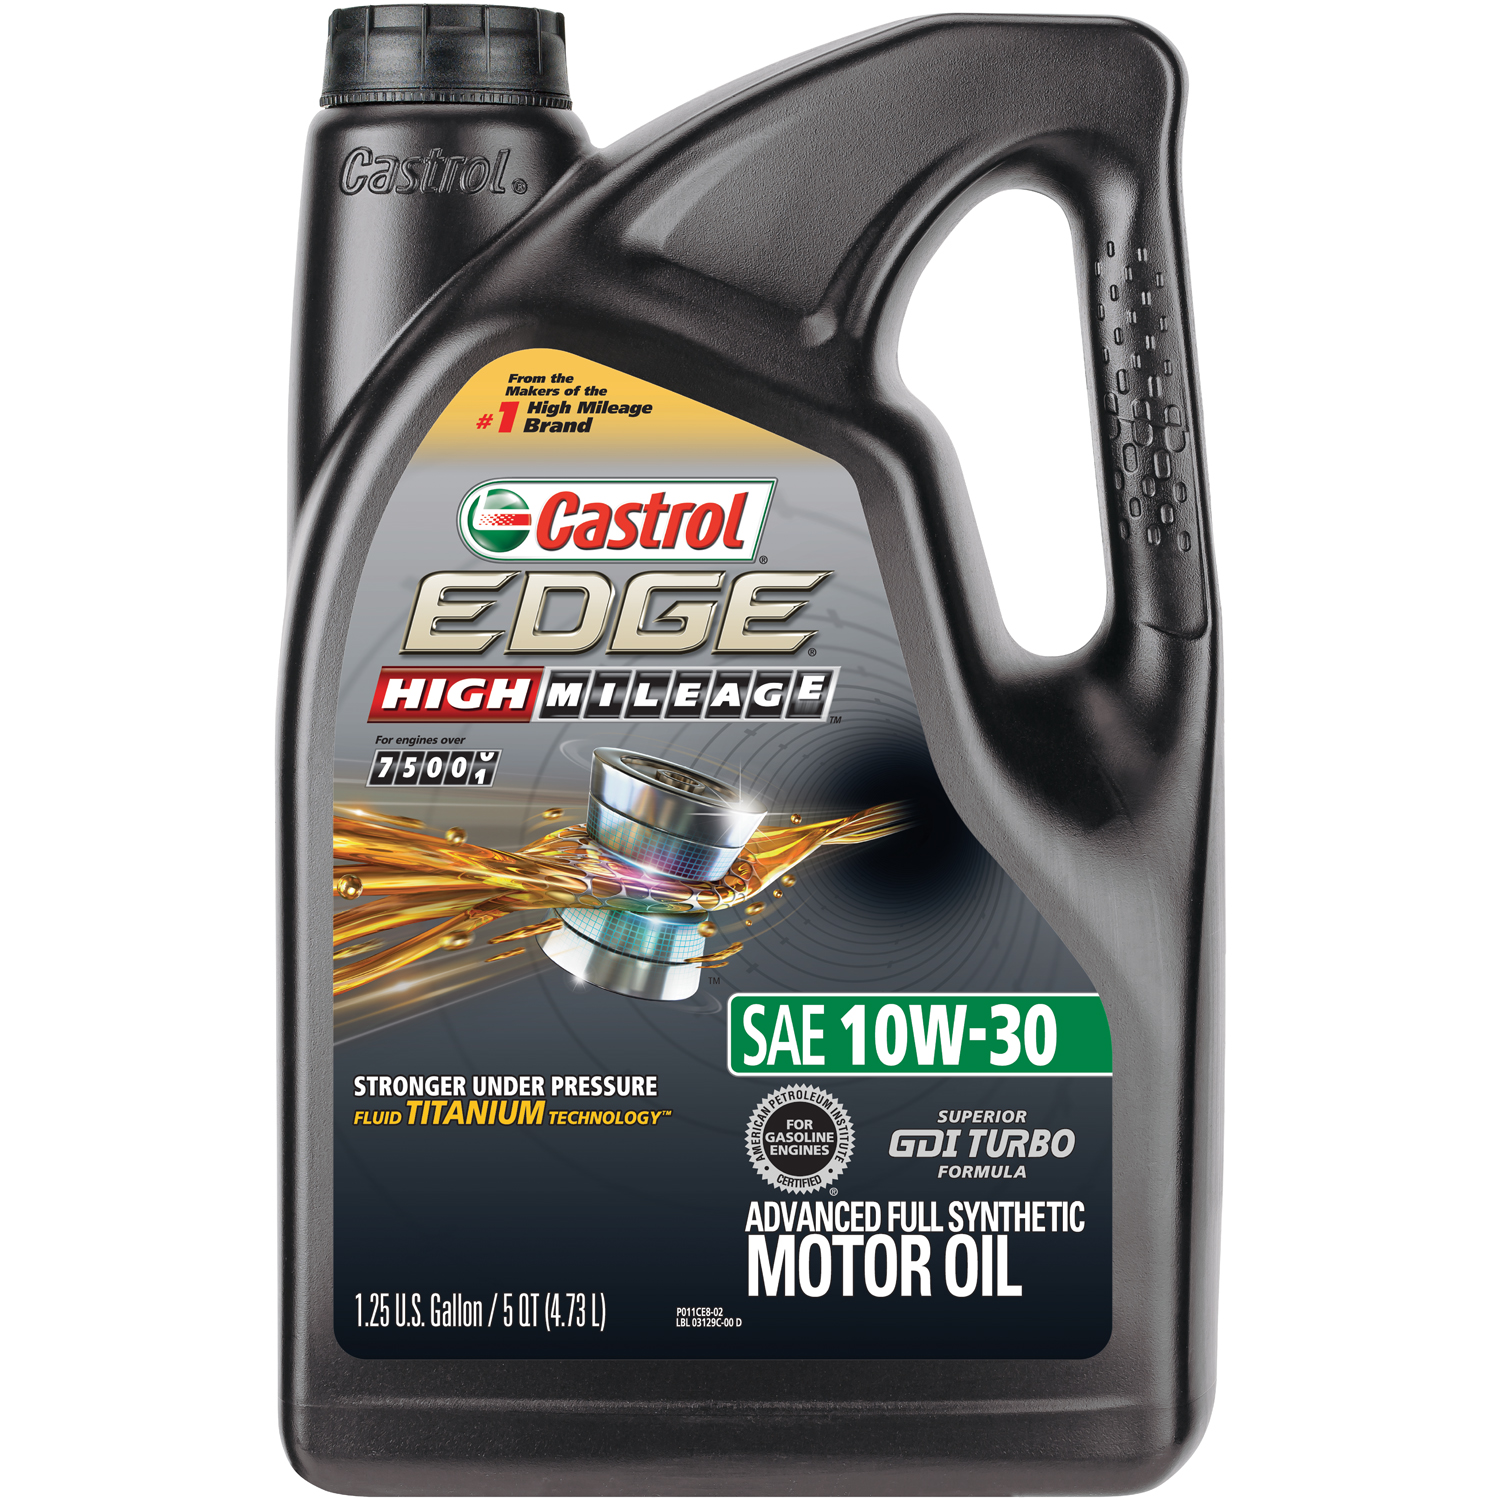 (3 Pack) Castrol EDGE High Mileage 10W-30 Advanced Full Synthetic Motor Oil, 5 QT